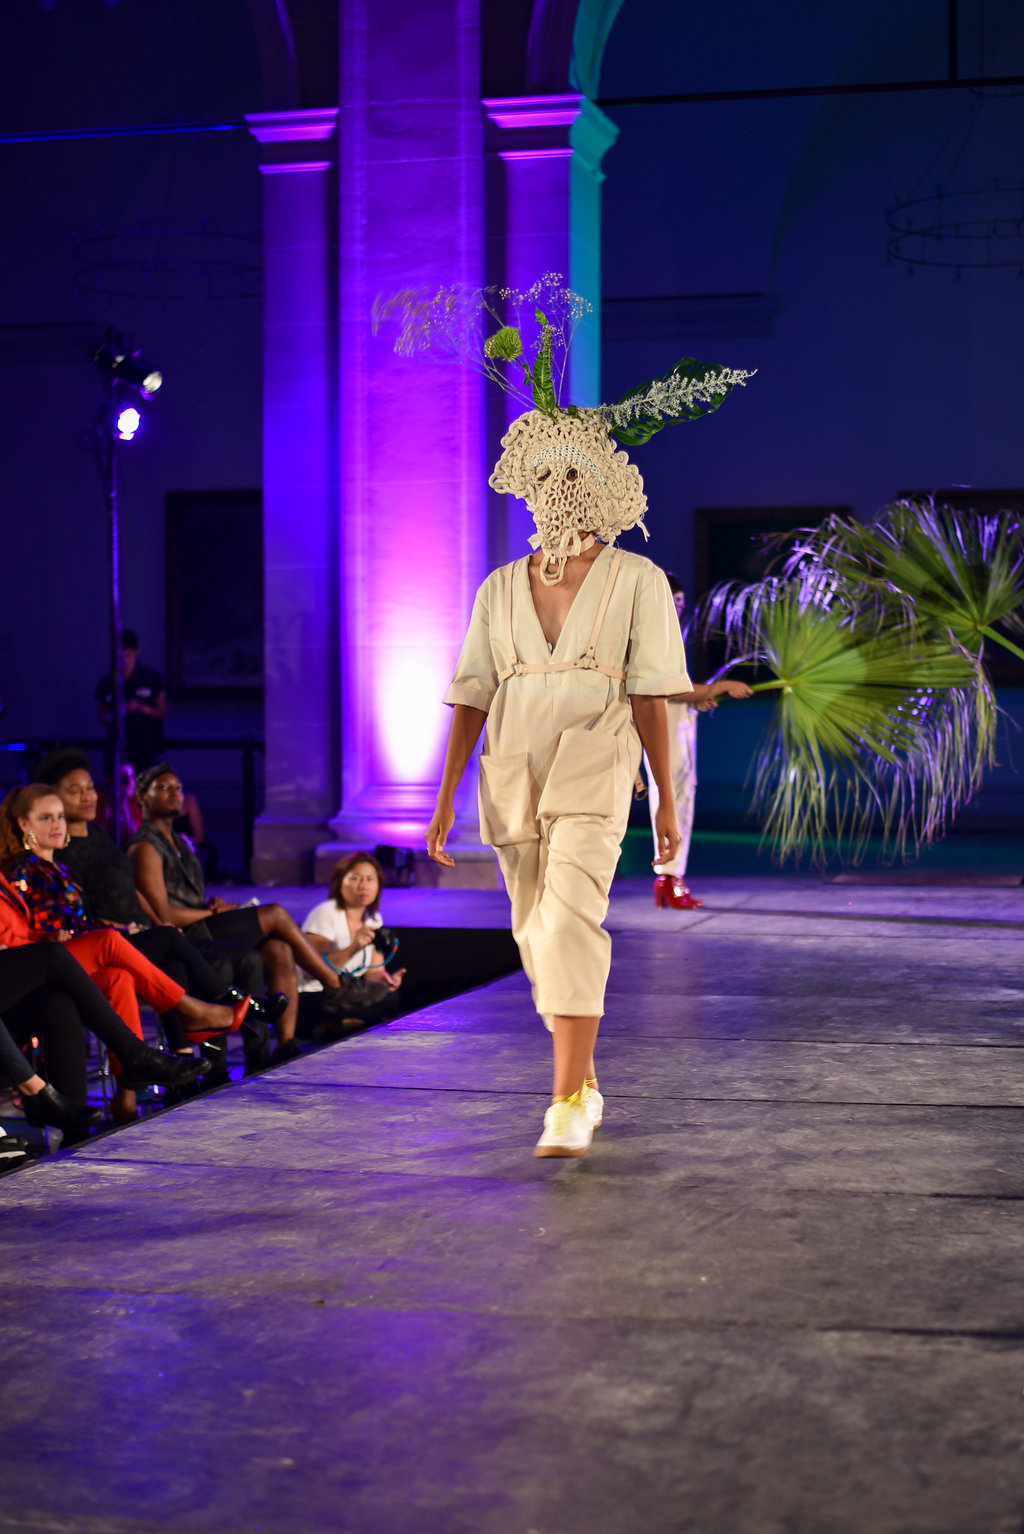 Salt NYFW Fall 2018 Runway Show September 6, 2018  Brooklyn Museum  Produced by Dapper Q  Photographer: Emily Chan